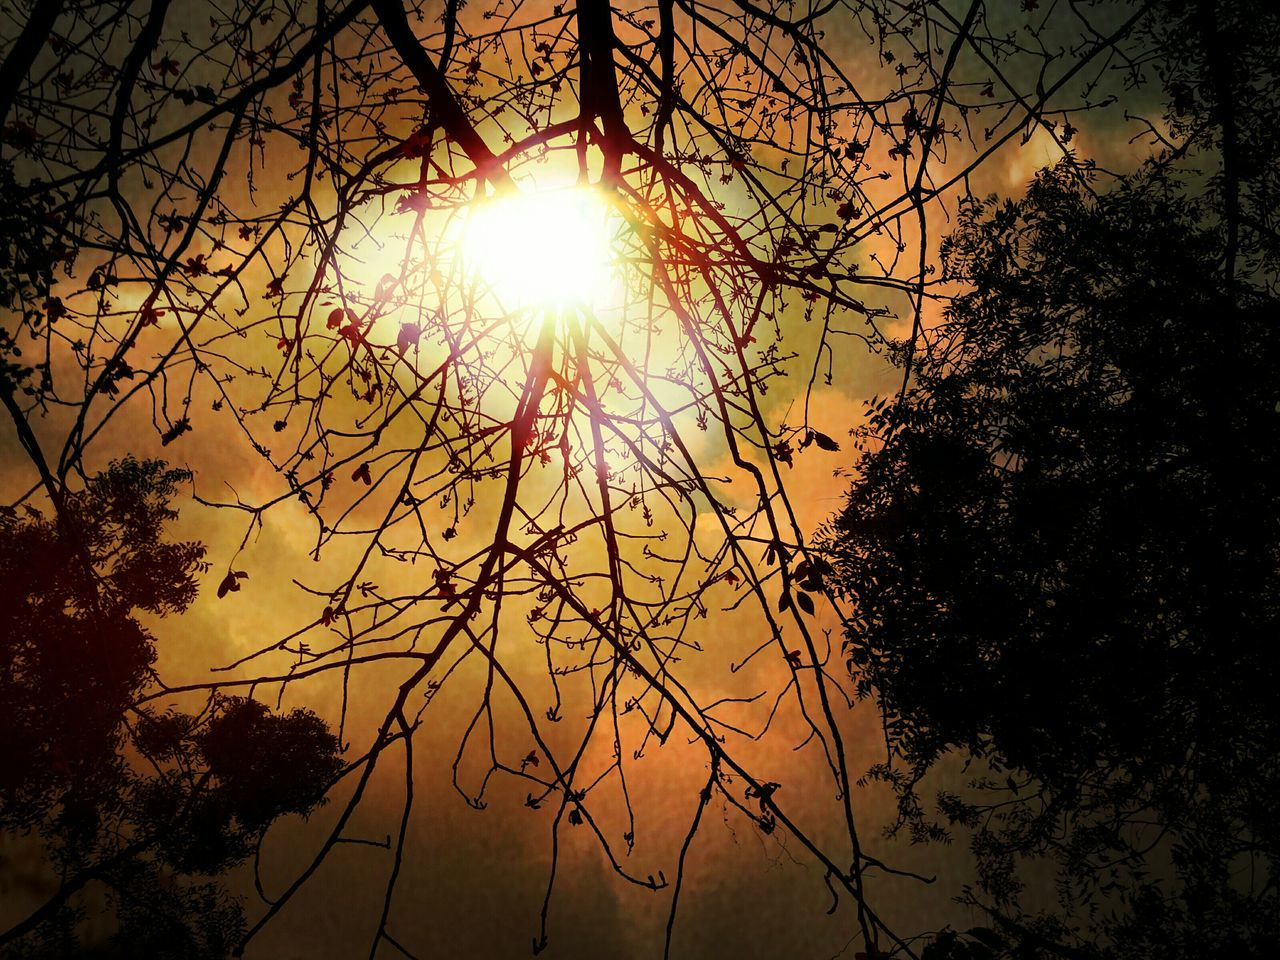 Sunset #sun #clouds #skylovers #sky #nature Beautifulinnature Naturalbeauty Photography Landscape [a: Sun Branches And Sky Branches ❤ Branches And Flower Branches Like Veins Sky And Clouds Orange Sky Sun ☀ Sun_collection, Sky_collection, Cloudporn, Skyporn Sunshine💛 Sunshine Through The Trees Branches Pattern Branches And Leaves Sunrise_sunsets_aroundworld Nature_collection